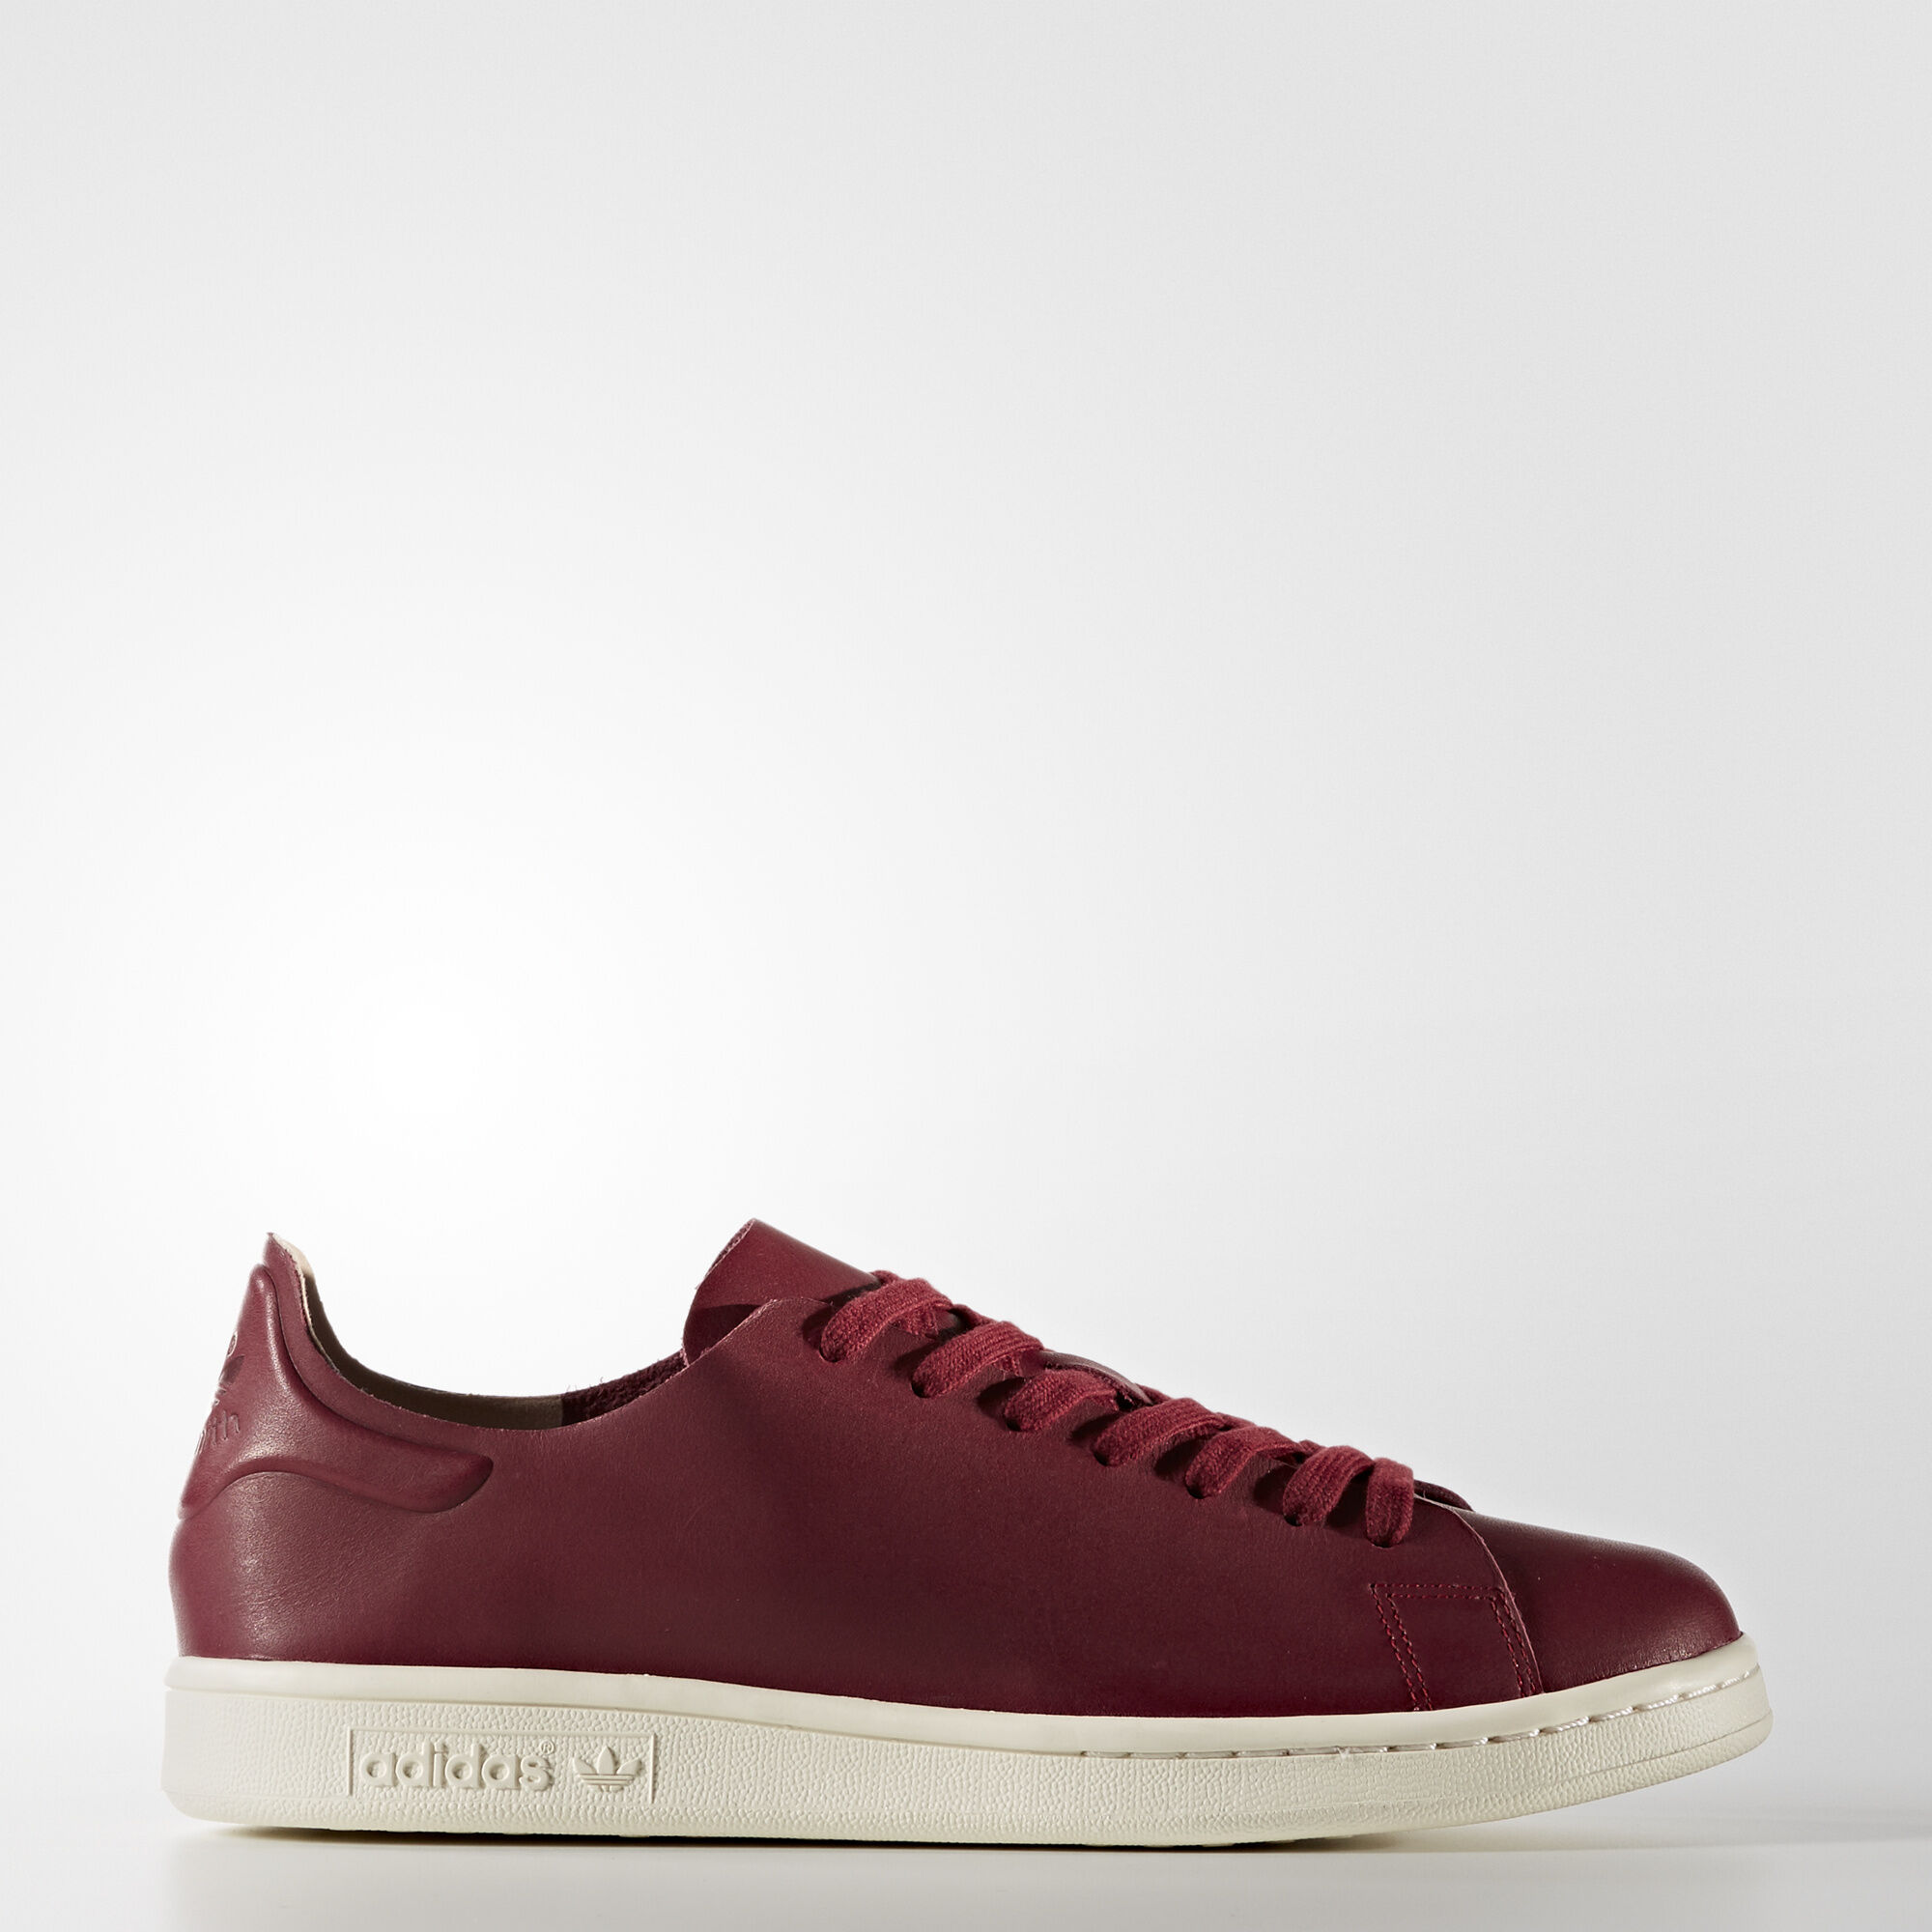 Adidas Stan Smith Pink Uk